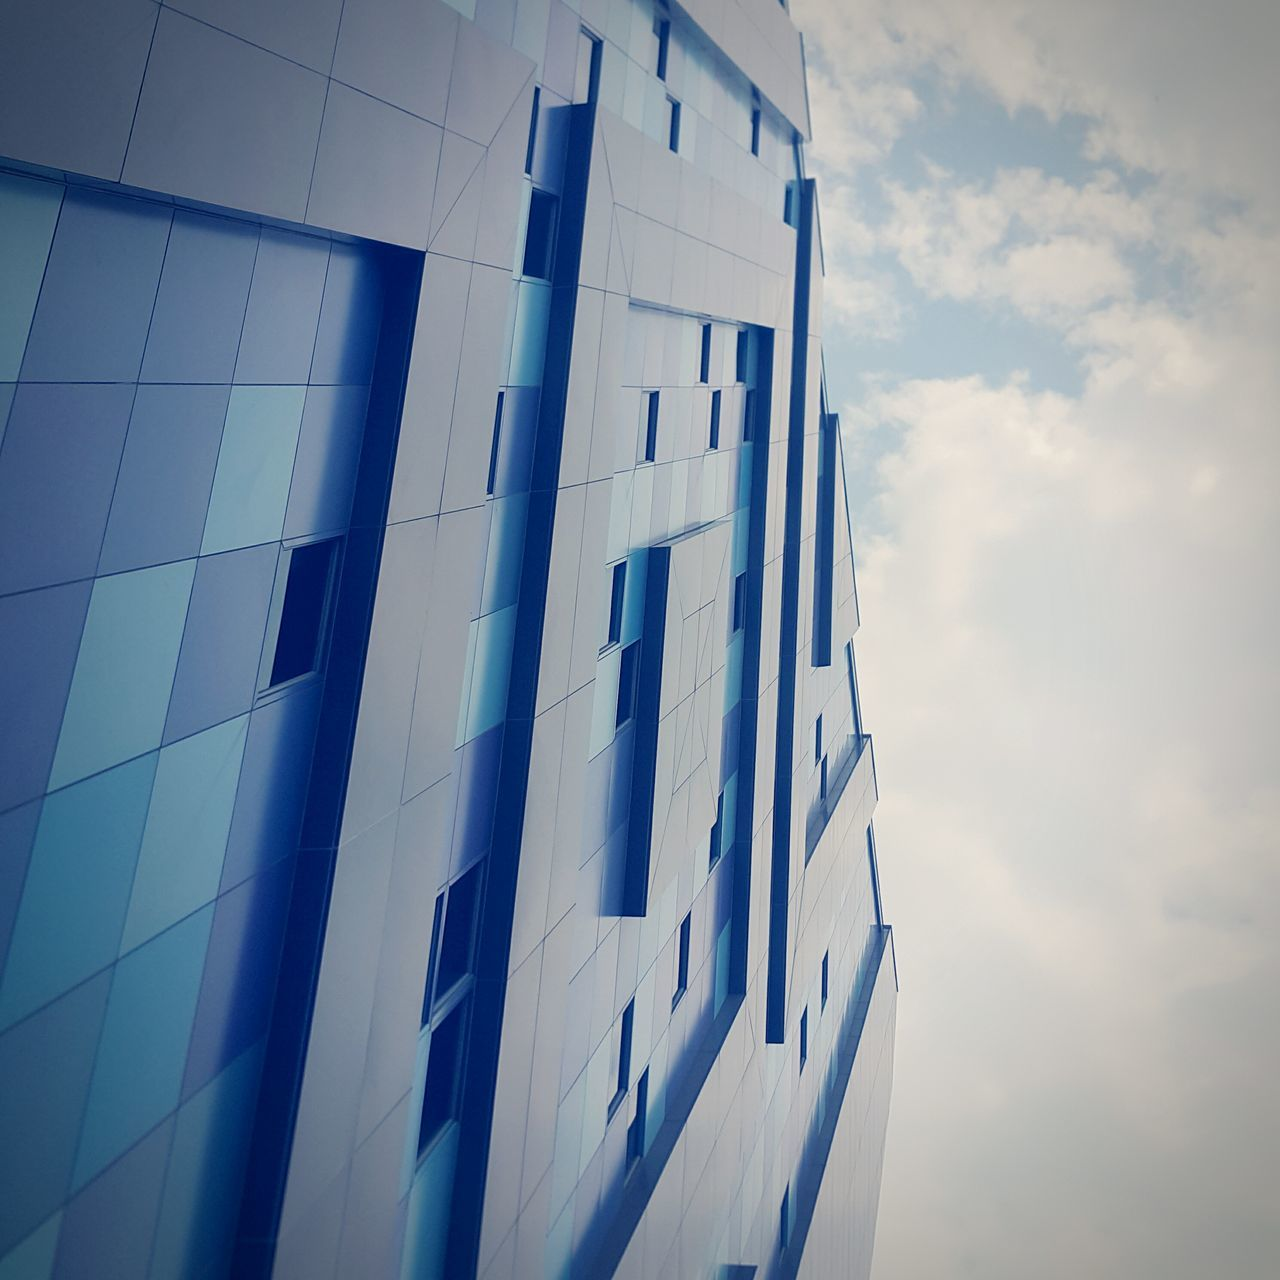 architecture, building exterior, built structure, window, low angle view, modern, blue, sky, no people, day, outdoors